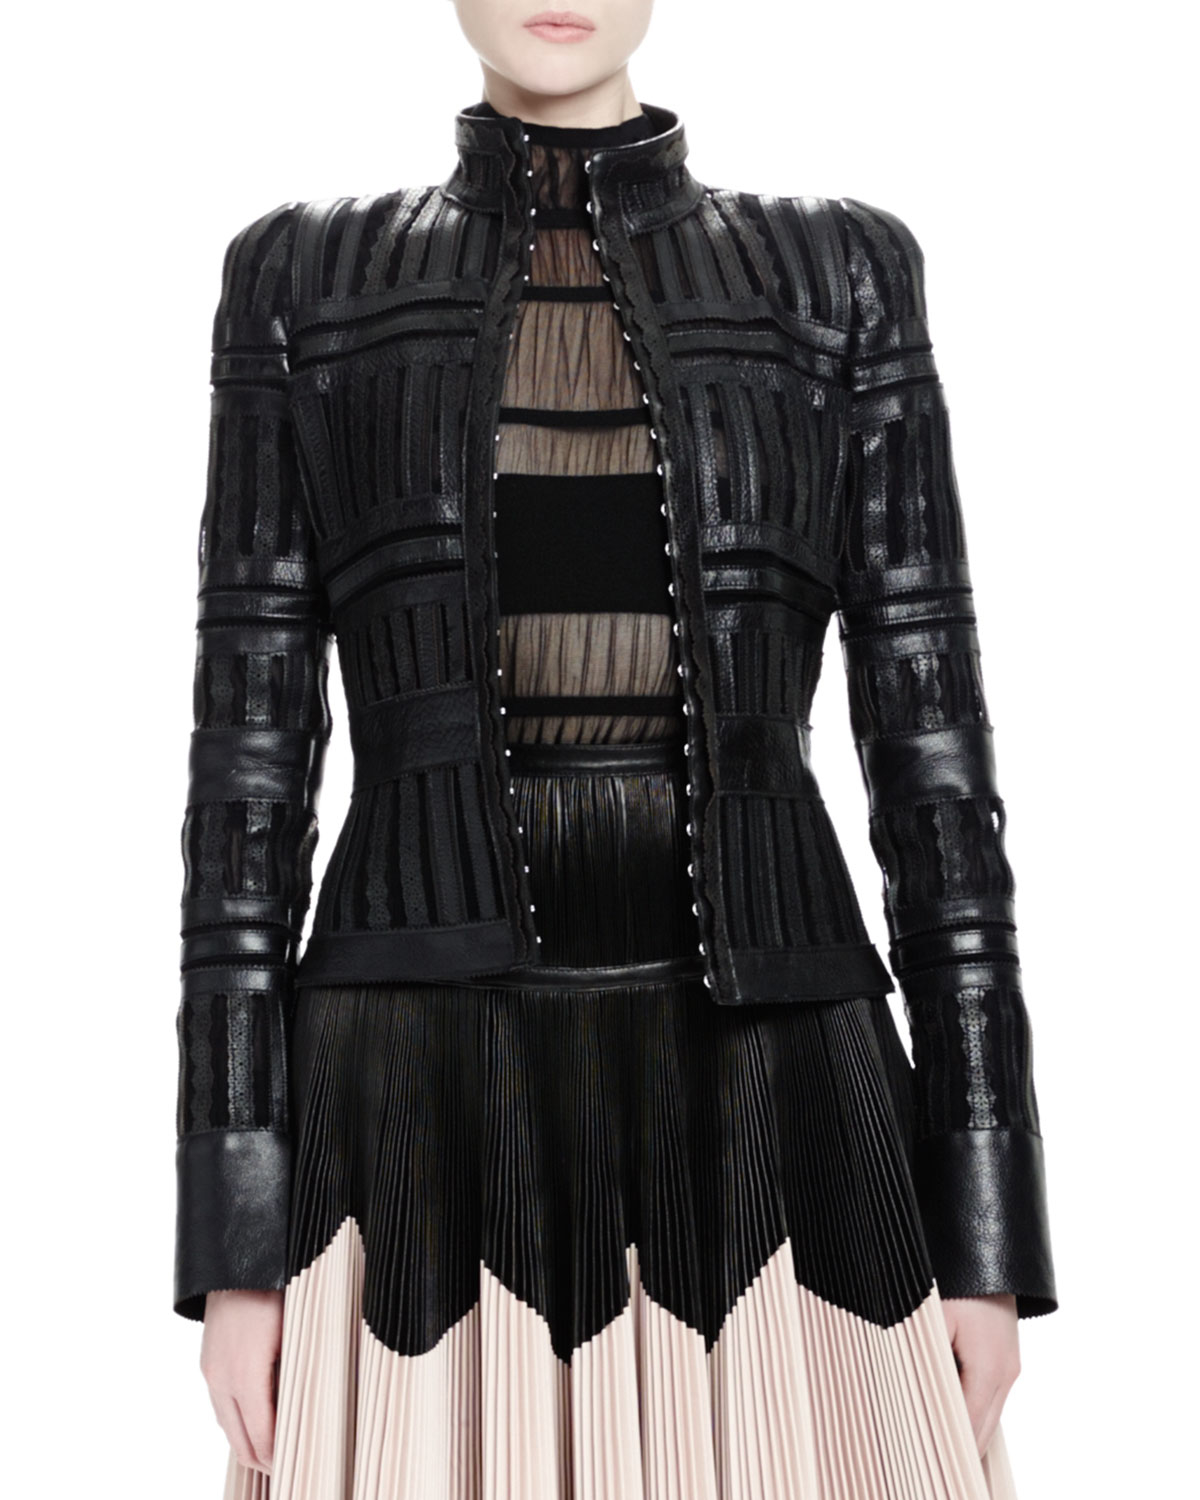 Alexander Mcqueen Laser Cut Sheer Paneled Leather Jacket